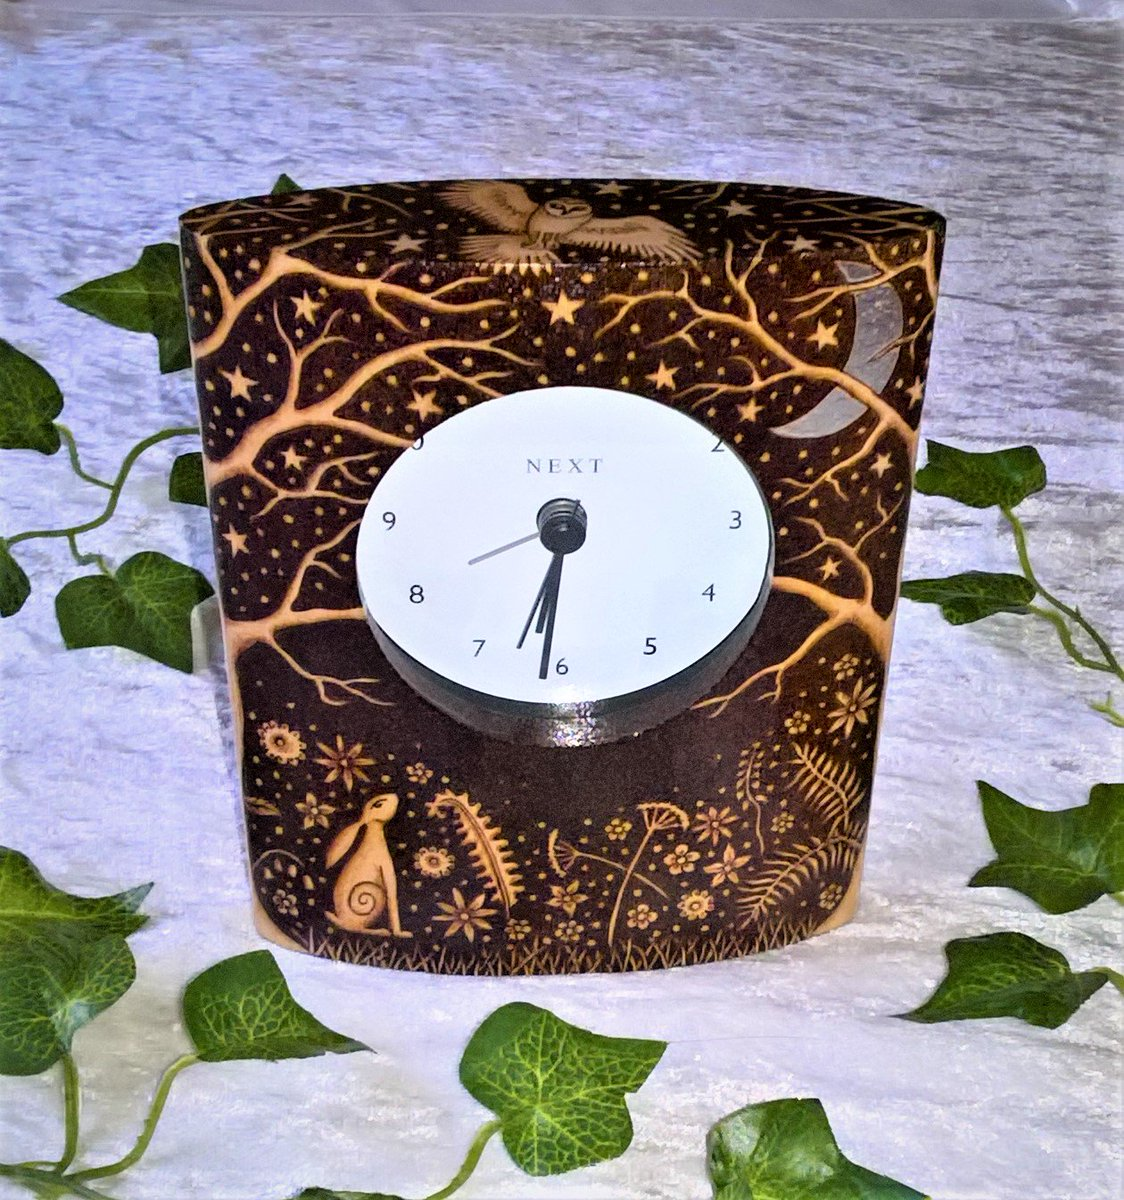 Latest burnt offering. #Pyrography clock with owl and hare #handmade #art<br>http://pic.twitter.com/pEXYZL6c2J